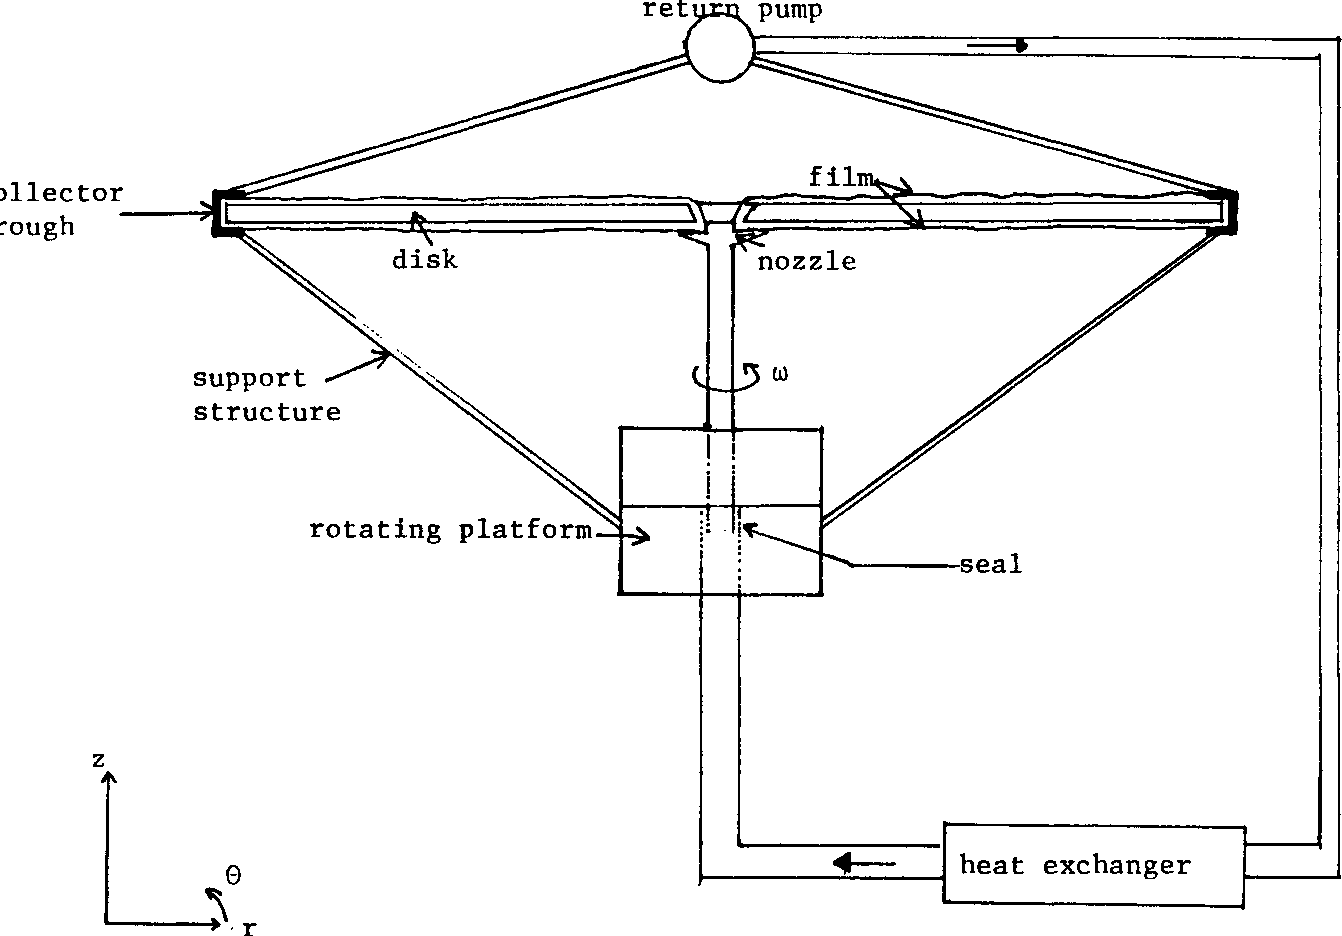 A Comparison Of Fluid And Heat Control Concepts For Binary Rankine Radiator Schematic Figure 20 Rotating Film